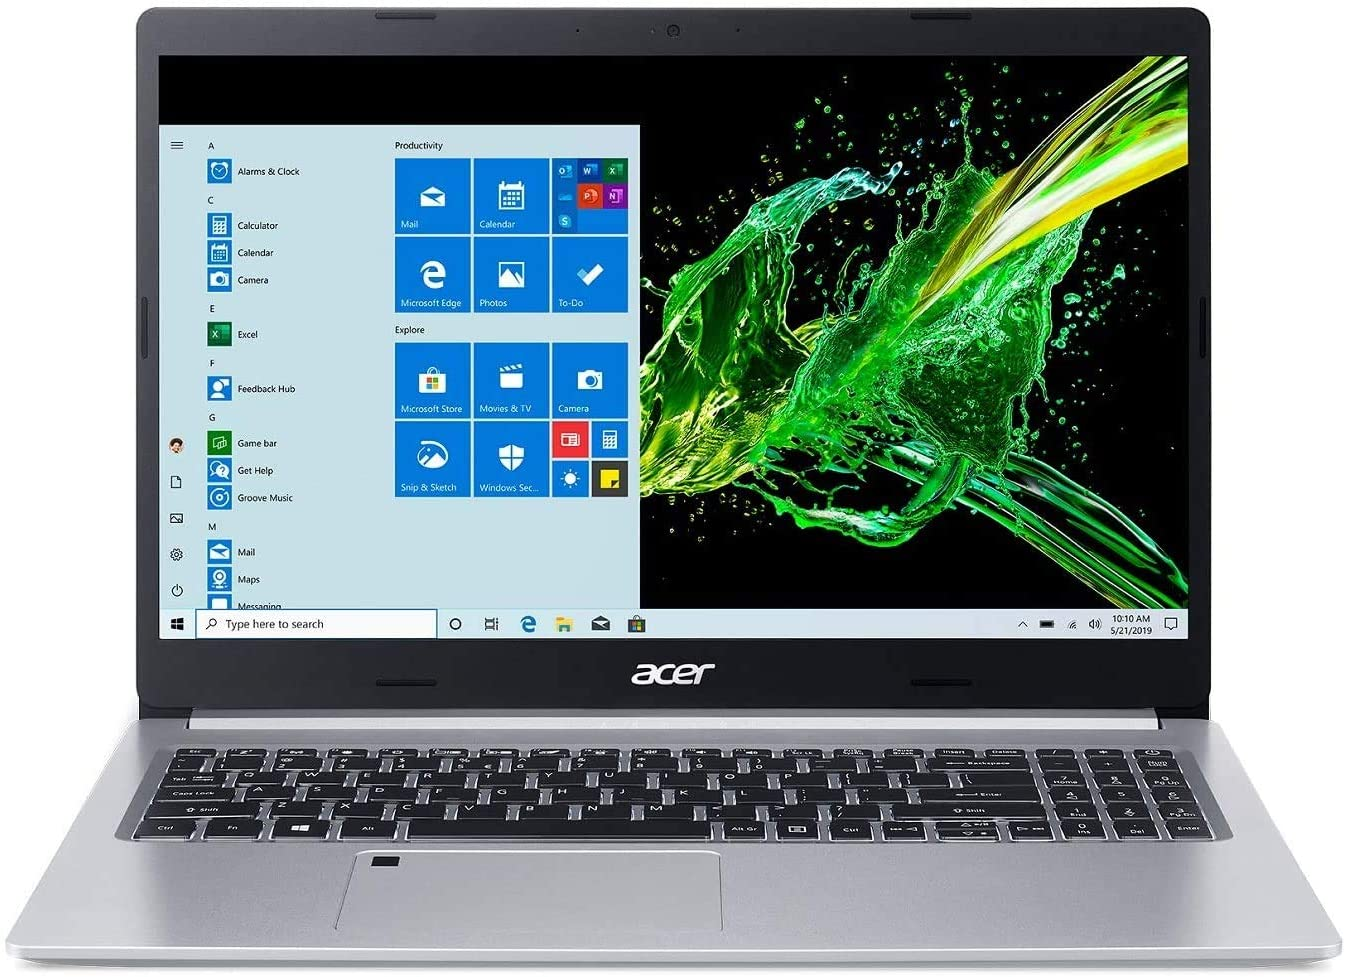 "Acer Aspire 5 15.6"" FHD IPS Laptop Computer 10th Gen Intel Core i5-1035G1 Processor (Up to 3.6GHz) 16GB RAM 512GB SSD WiFi 6, HD Webcam, Fingerprint Reader, Backlit Keyboard, Windows 10 Pro"